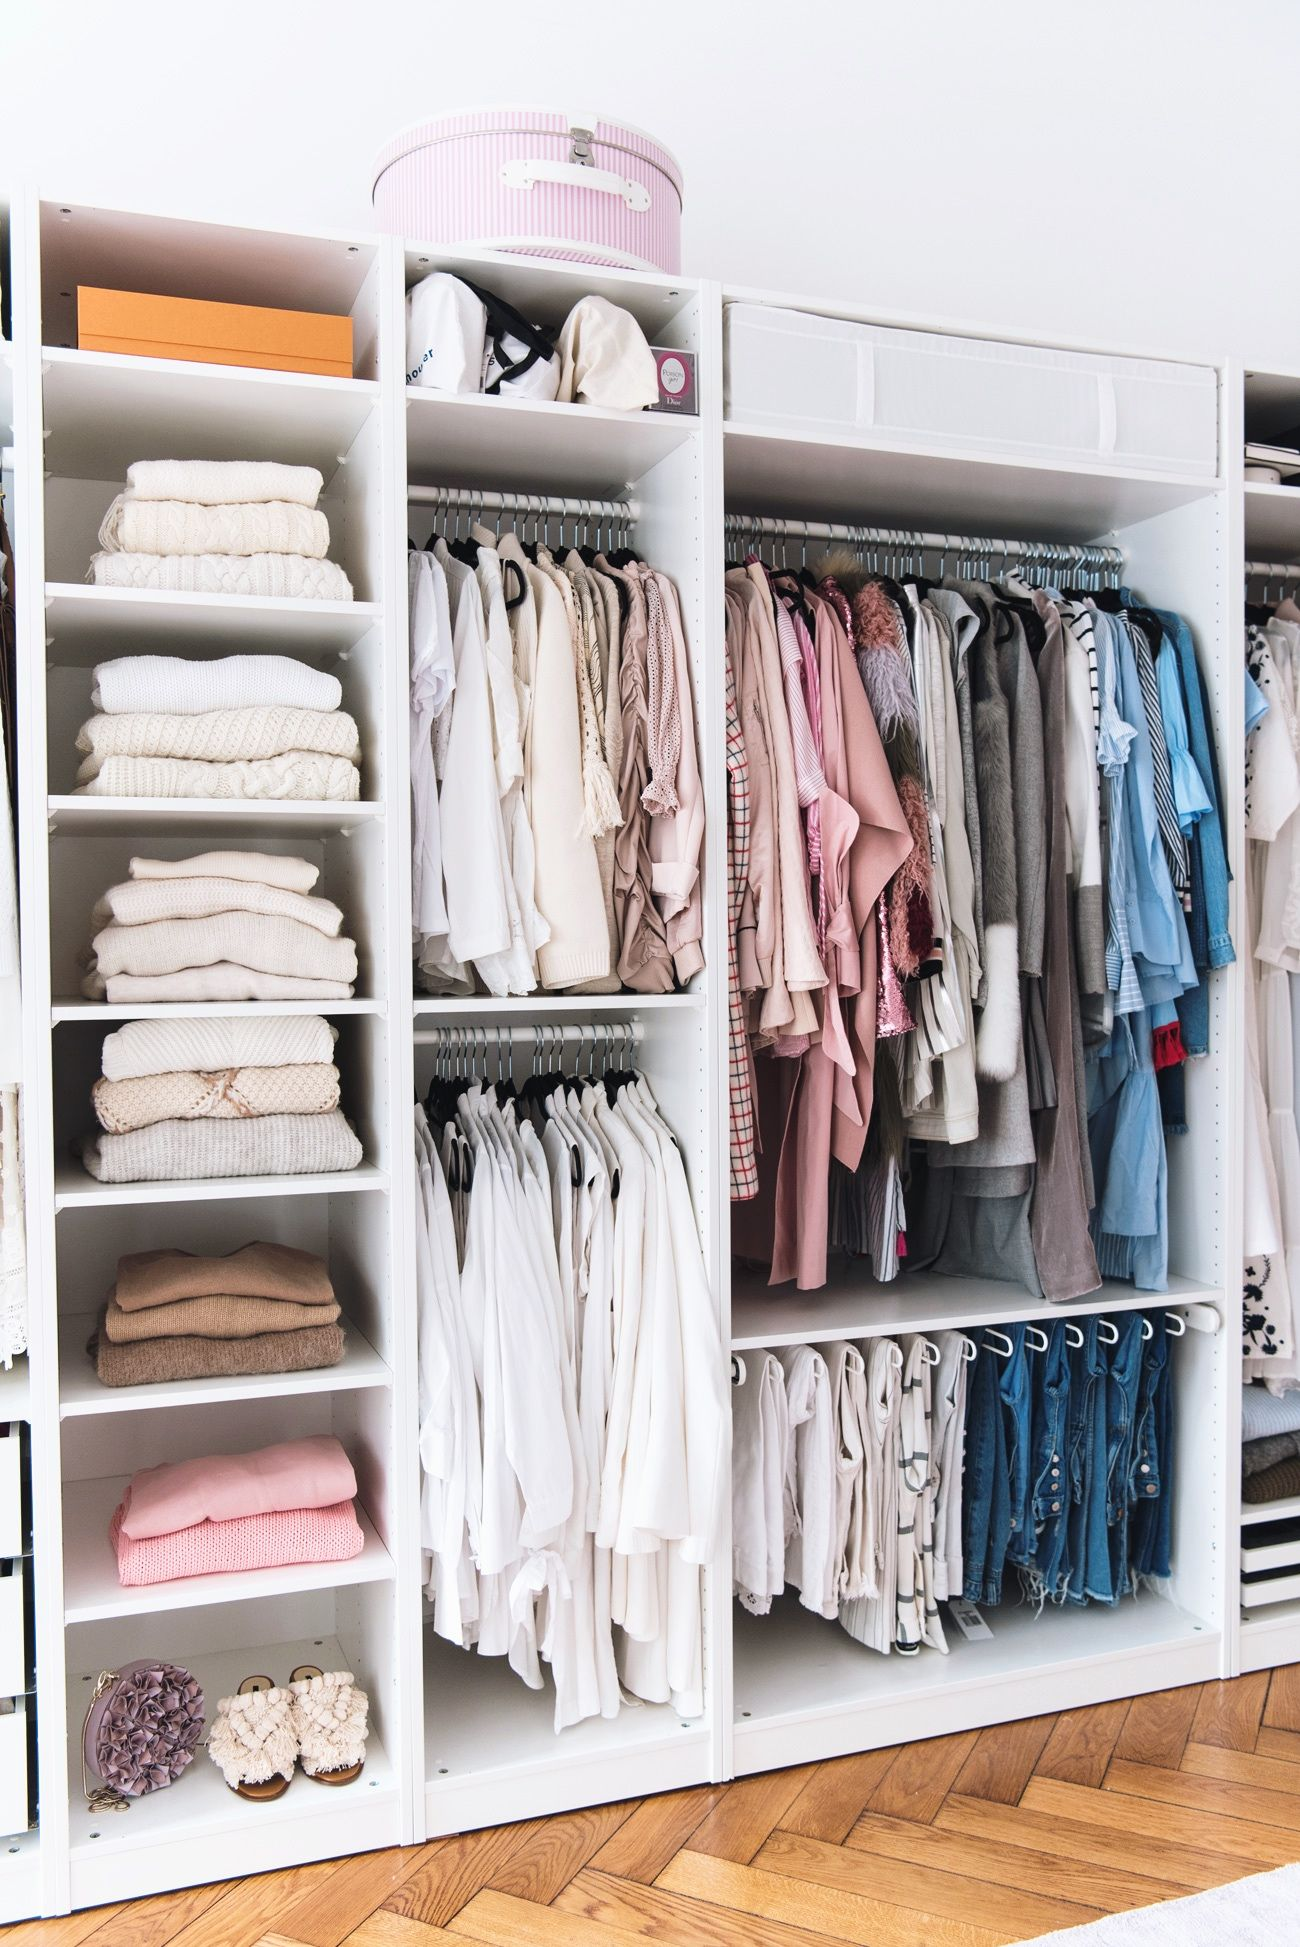 everything tips in closet organizing organize ideas walk decorate organization and